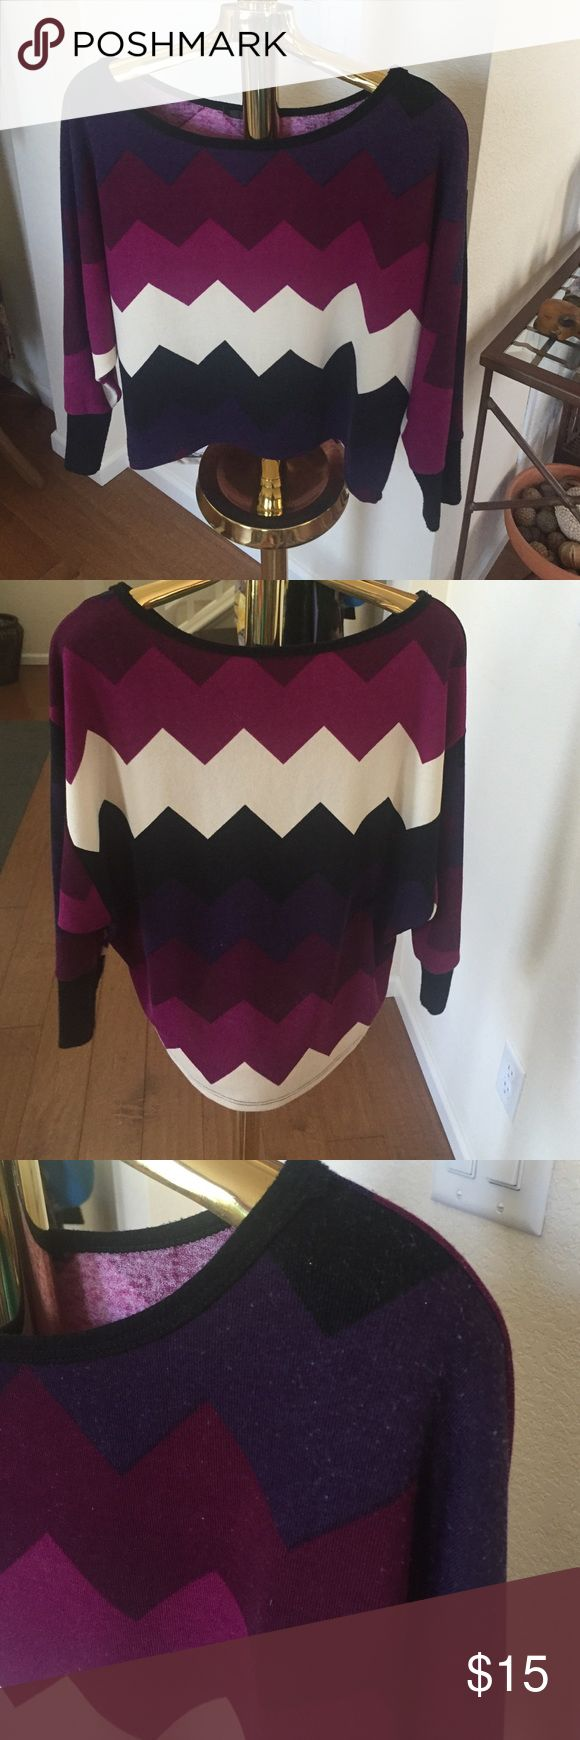 "Fun Aztec Design Sweater Shirt MCM- Small Multi-colored sweater shirt. Shorter in front and longer in back. 3/4 sleeve. Good condition with signs of wear shown in pic. 17"" from front collar to waist and 22"" in back. Poly Rayon Spandex blend. MCM Sweaters Crew & Scoop Necks"